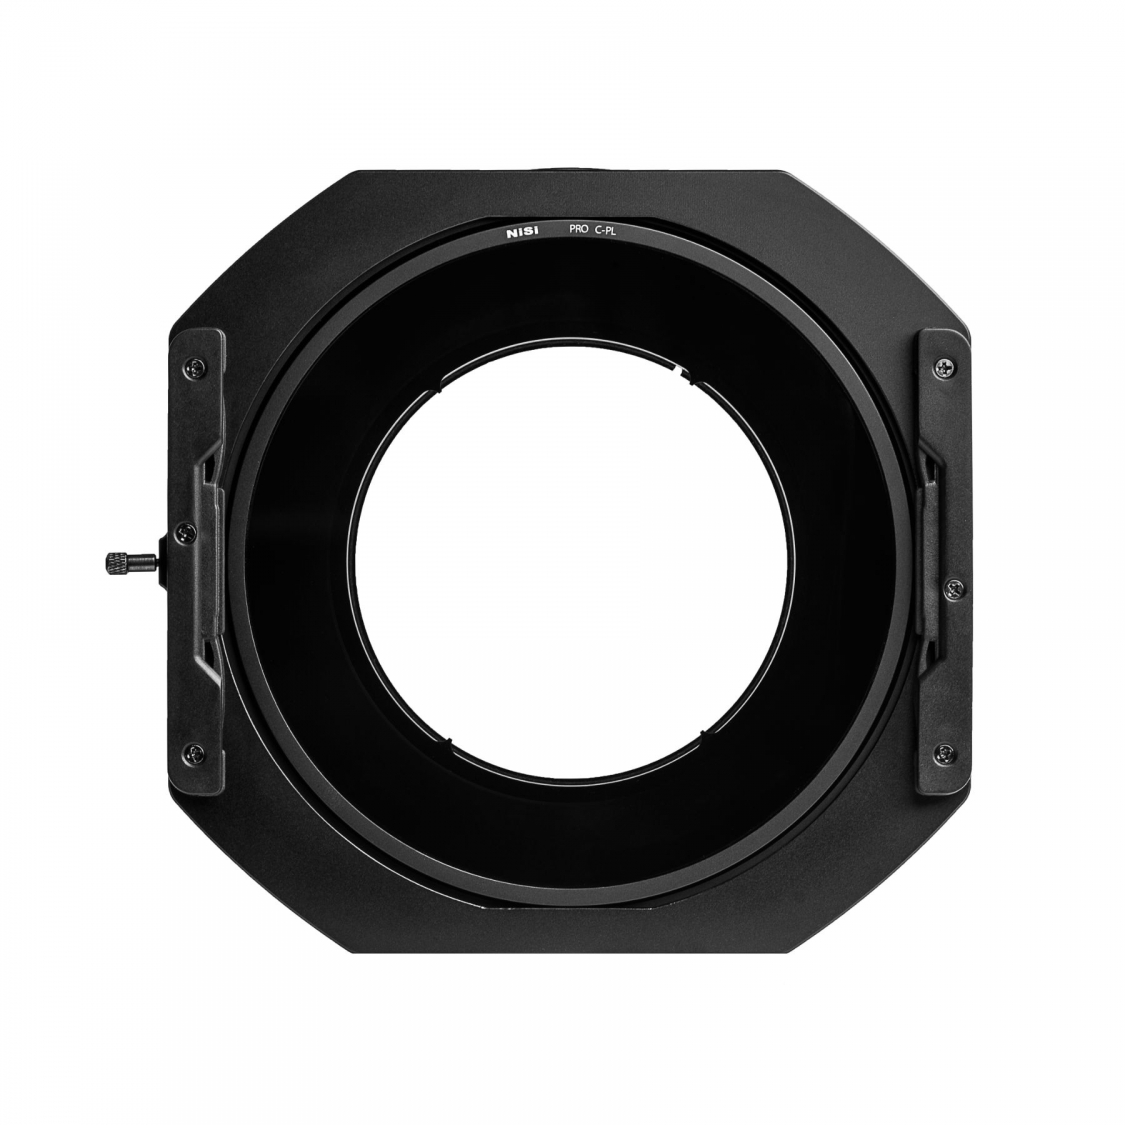 NiSi S5 Kit 150mm Filter Holder with Enhanced Landscape NC CPL for Tamron 15-30mm f/2.8